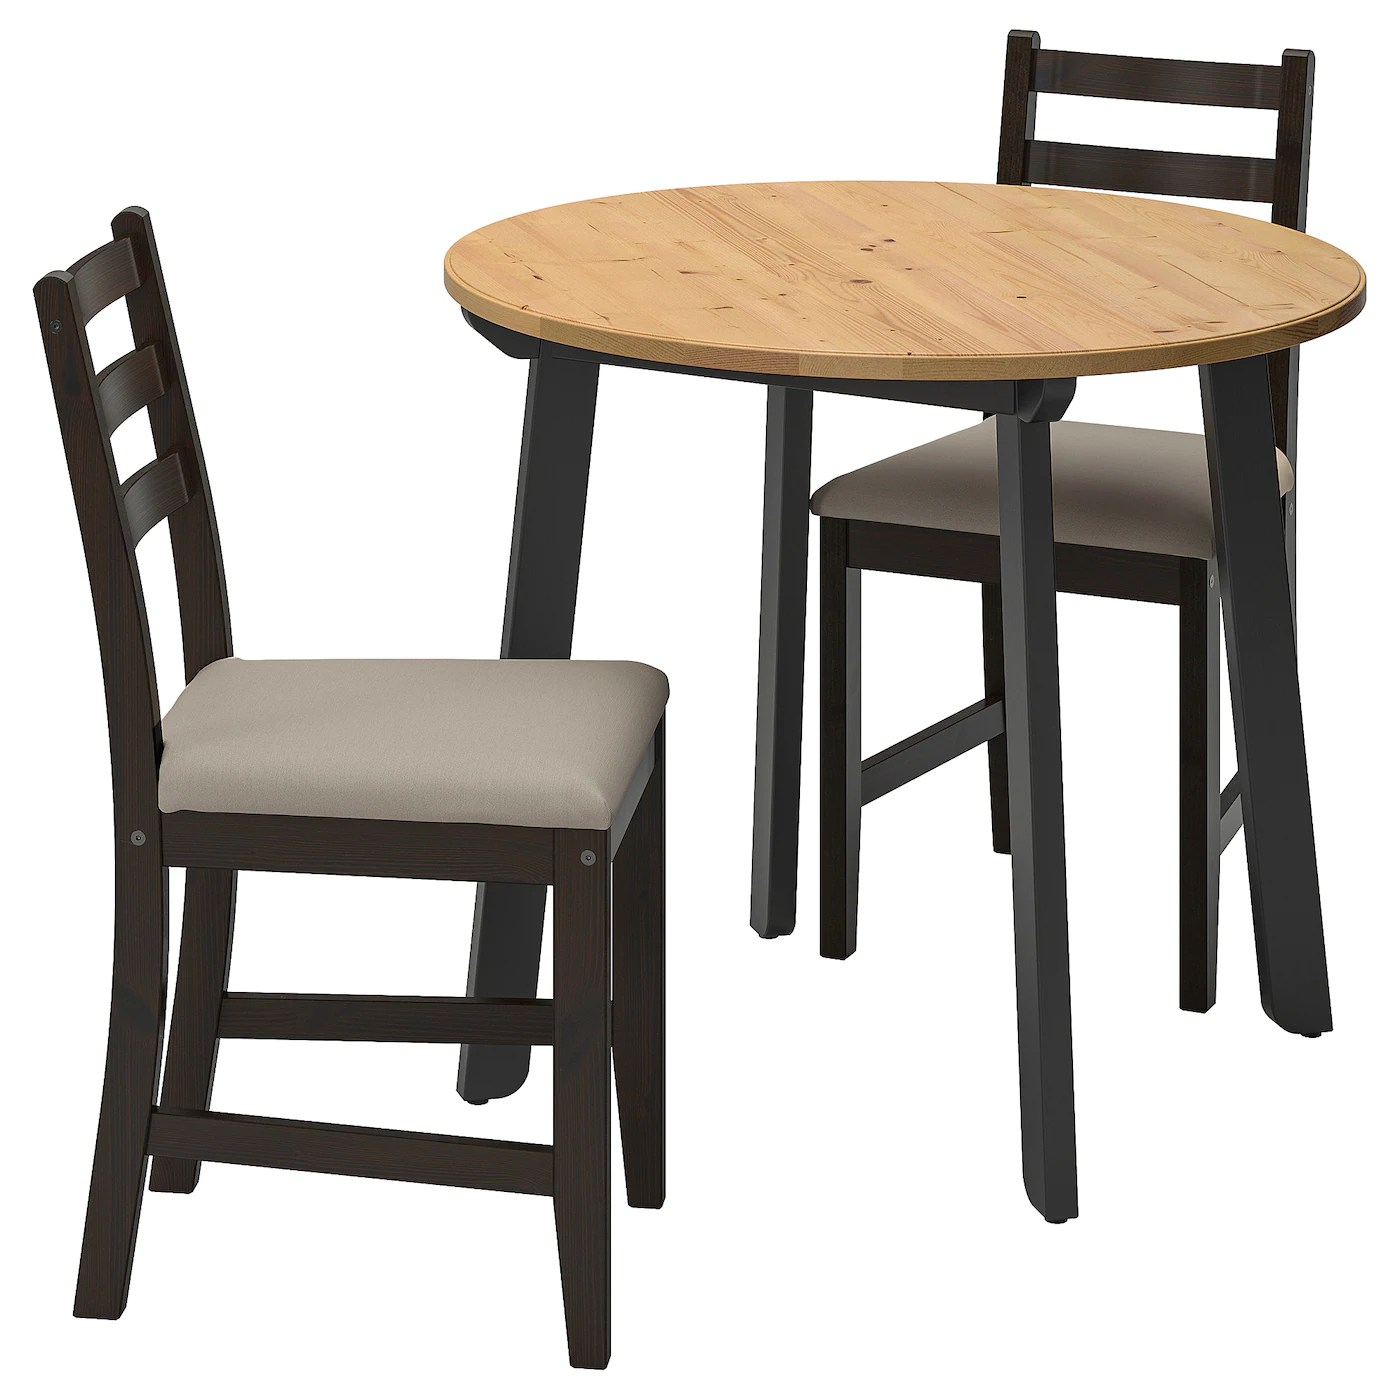 Gamlared Lerhamn Table And 2 Chairs Light Antique Stain Black Brown Vittaryd Beige Ikea